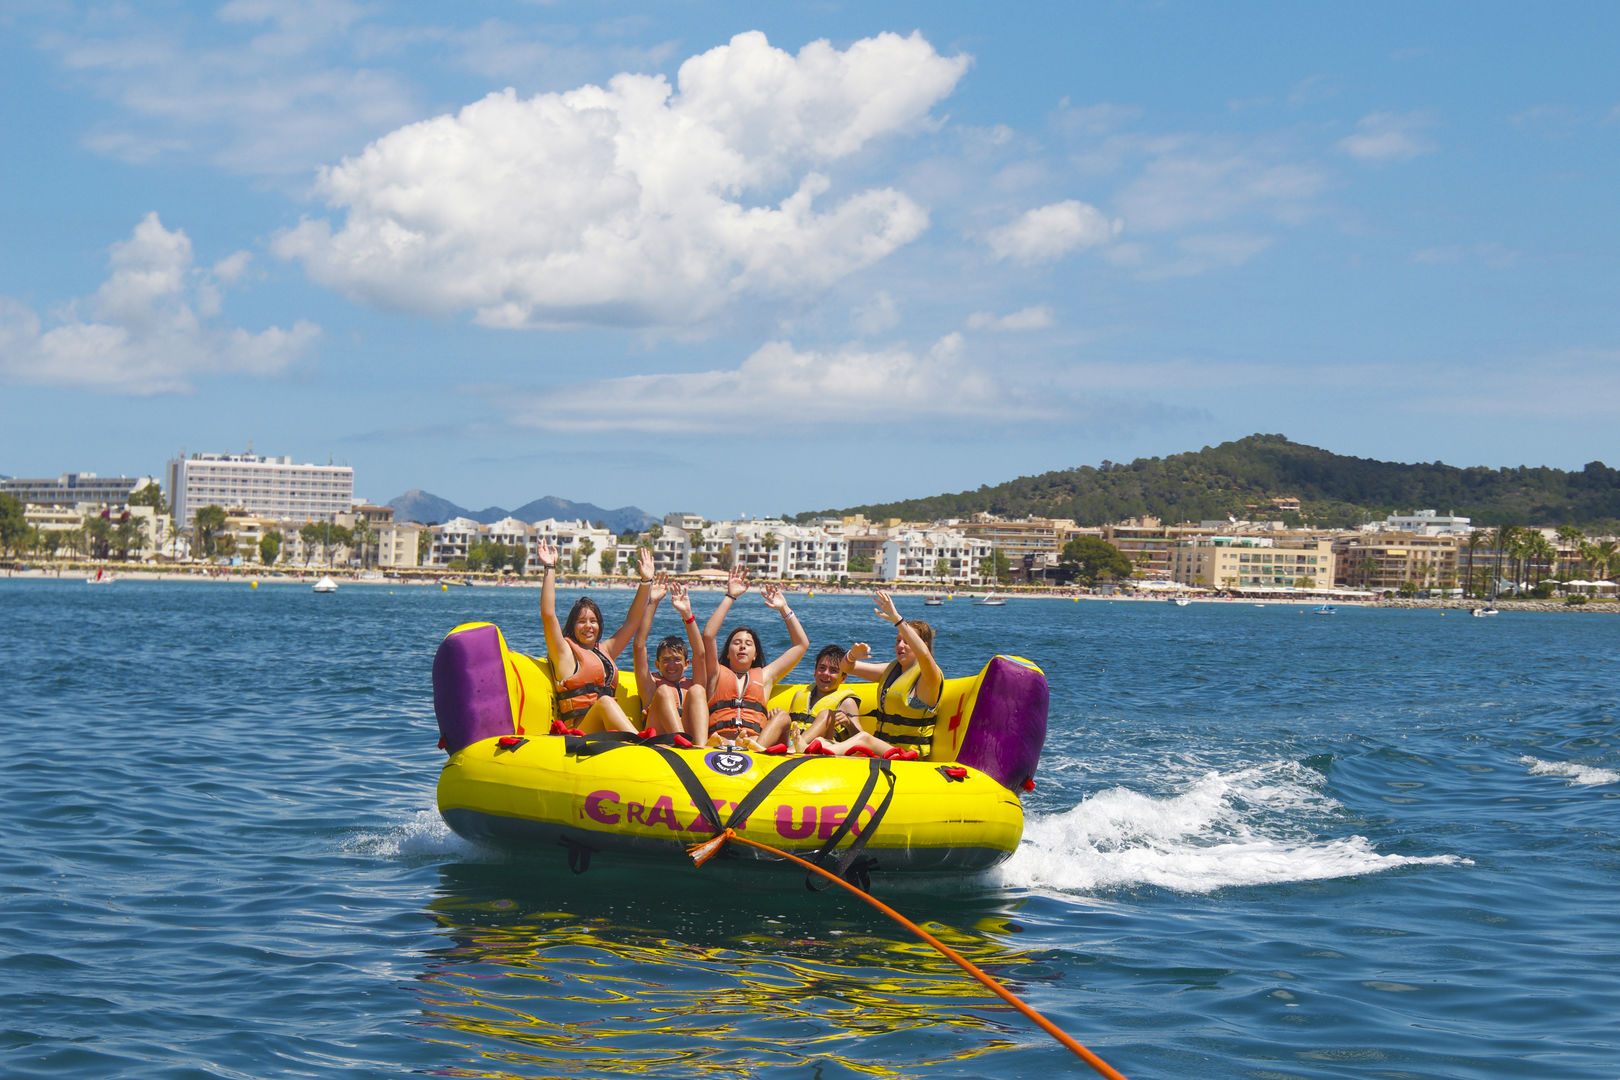 Activity of Sofa from water activities on Mallorca